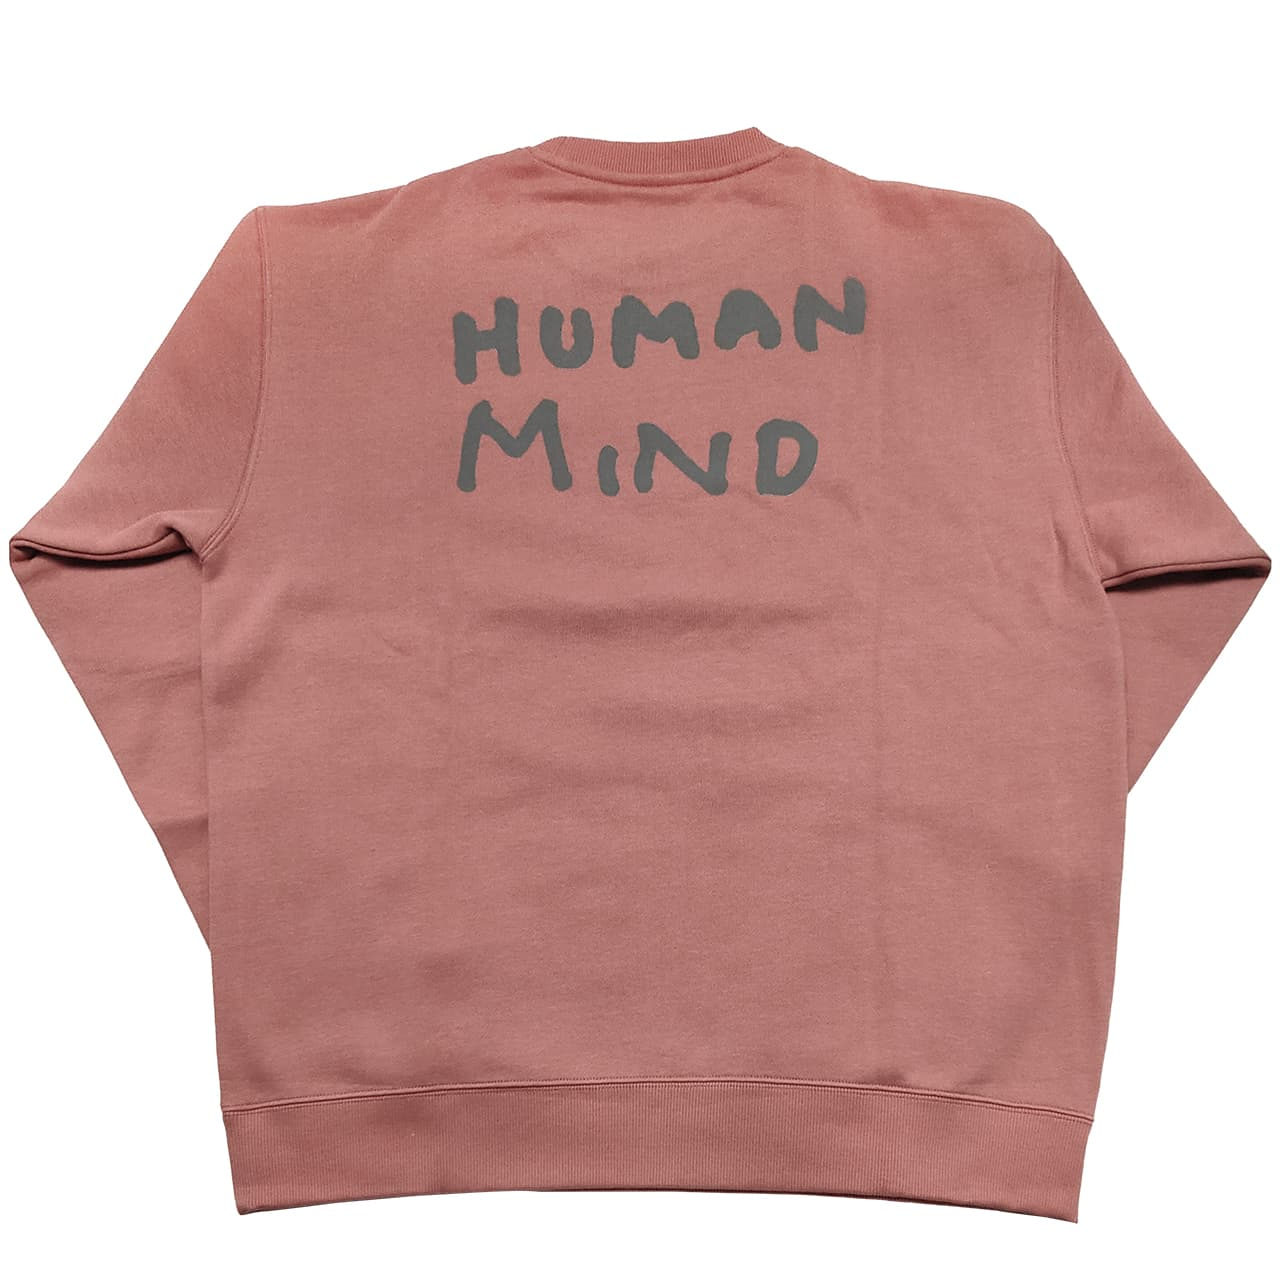 Human Mind Print Sweatshirt by MARK GONZALES (S.RED)